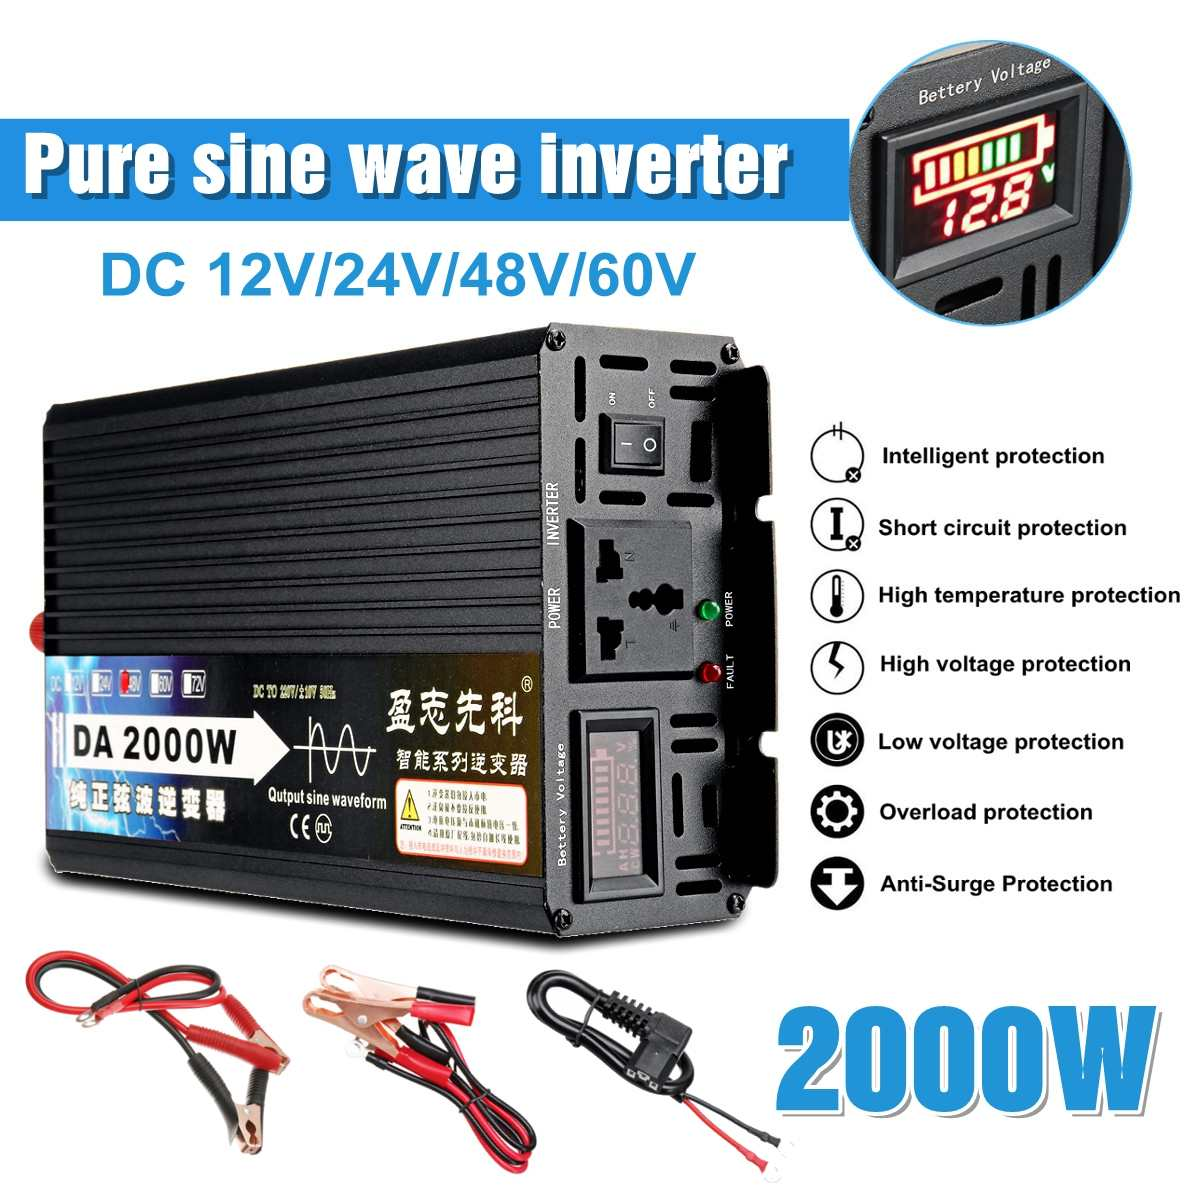 2000W Voltage transformer Pure Sine Wave Power Inverter 12V/24V/48V/60V TO 220V LCD Display Voltage Converter2000W Voltage transformer Pure Sine Wave Power Inverter 12V/24V/48V/60V TO 220V LCD Display Voltage Converter